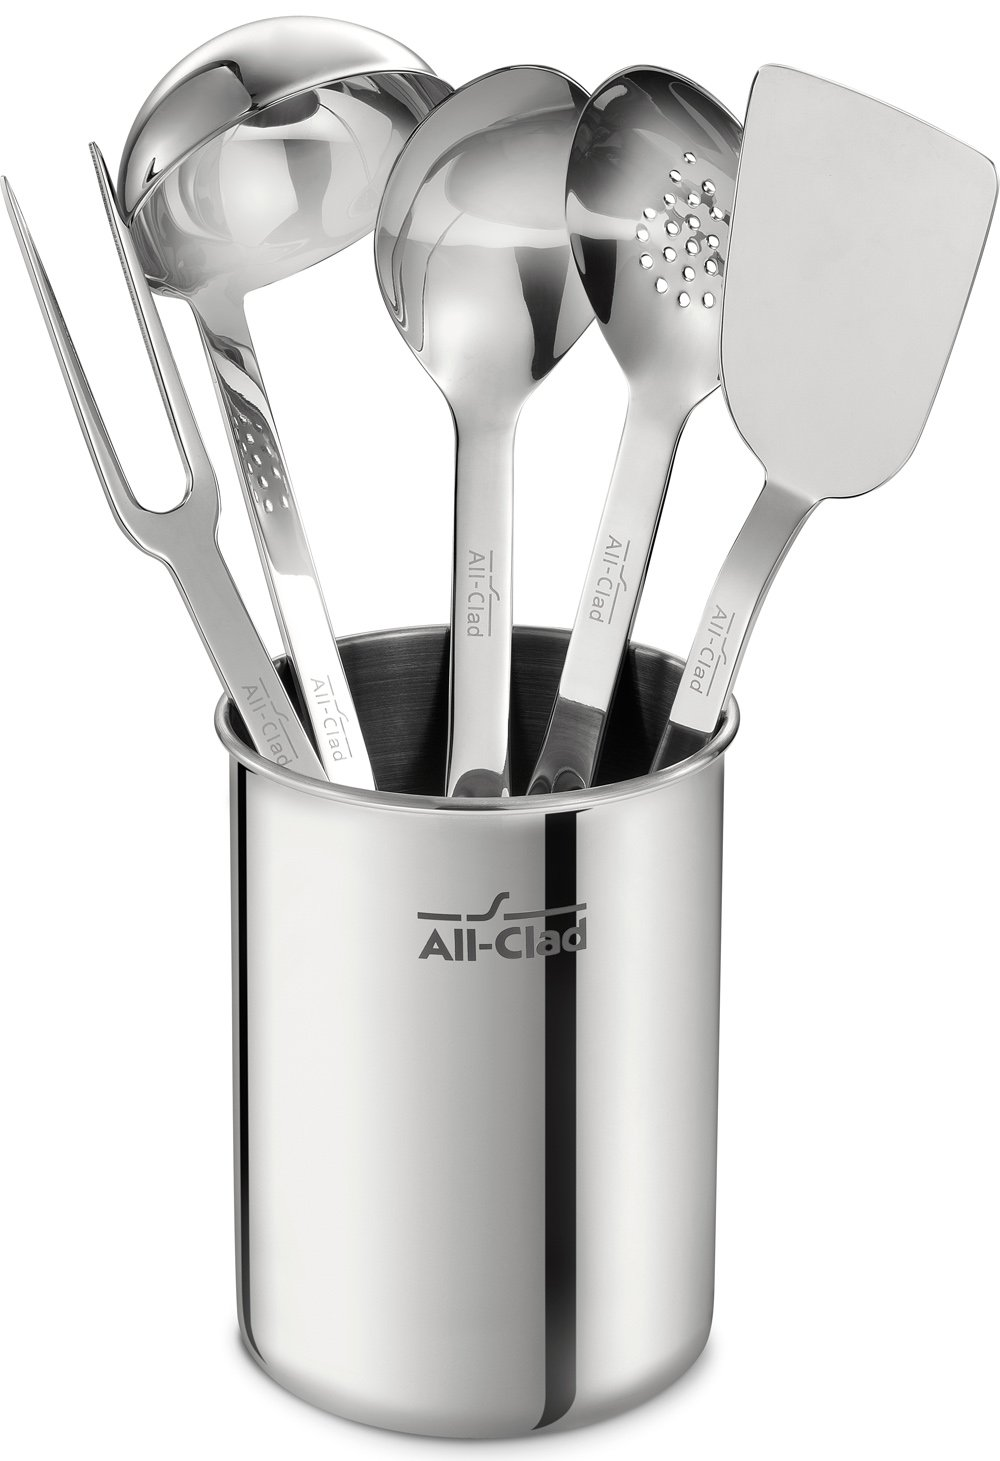 amazon com all clad tset1 stainless steel kitchen tool set caddy